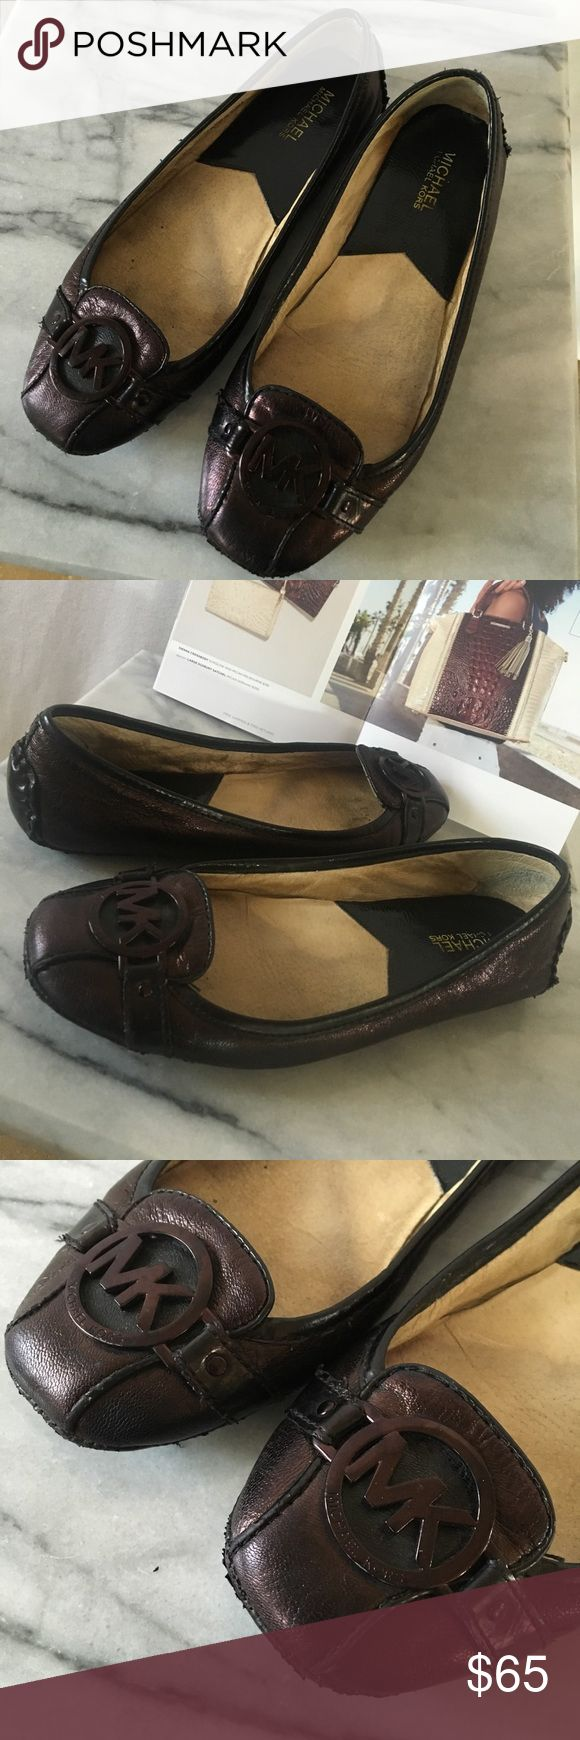 Michael Kors ballet flat Good used condition. Bottom back of heels show some wear, Leather upper is in great condition. Metallic reddish-brown with black trim. Sz 8.5 M. Thanks‼️🍾 MICHAEL Michael Kors Shoes Flats & Loafers